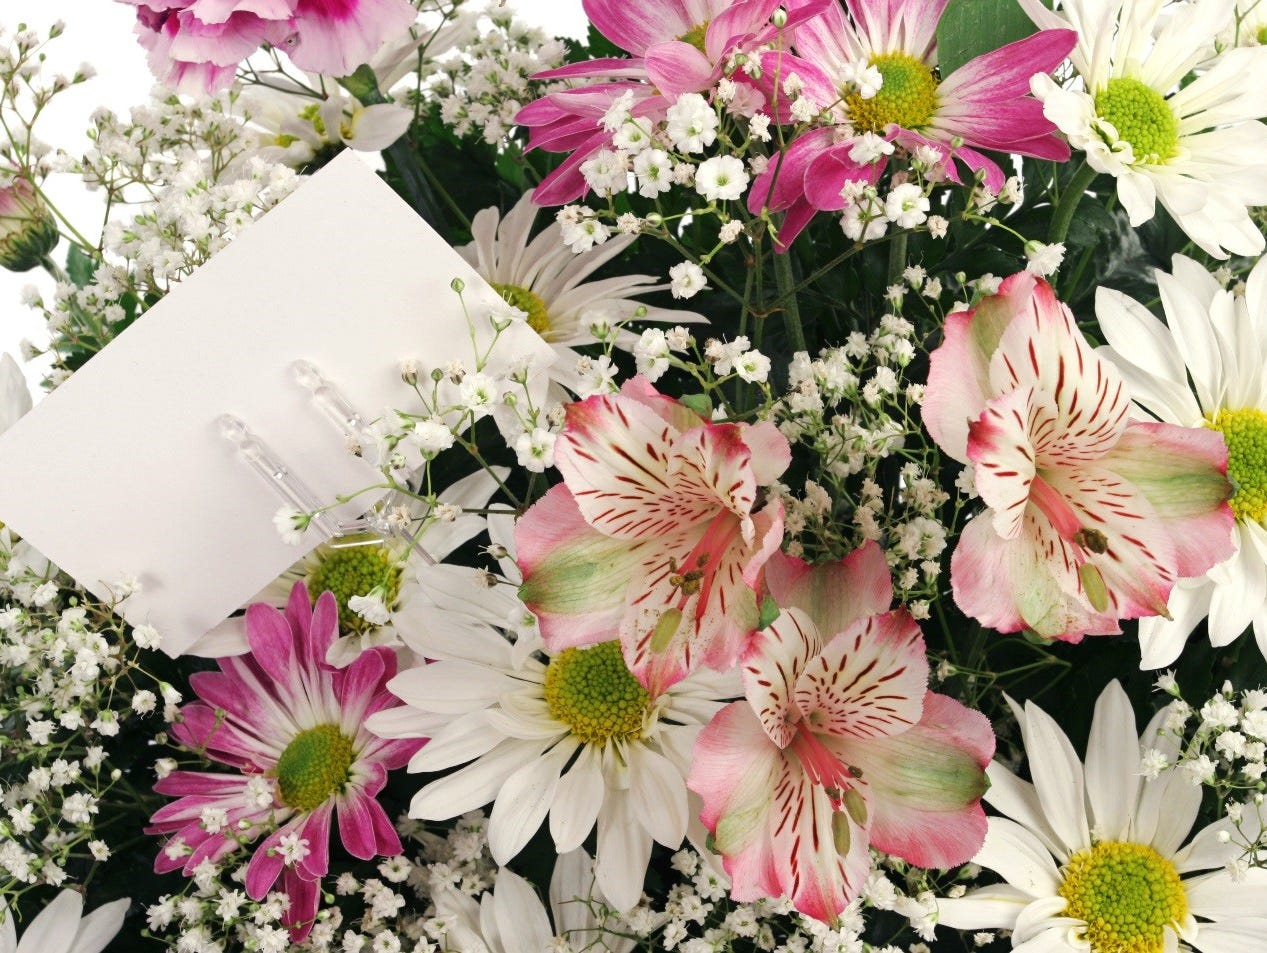 Fresh Flowers delivered to your door! Enter to win 5/1-5/22.